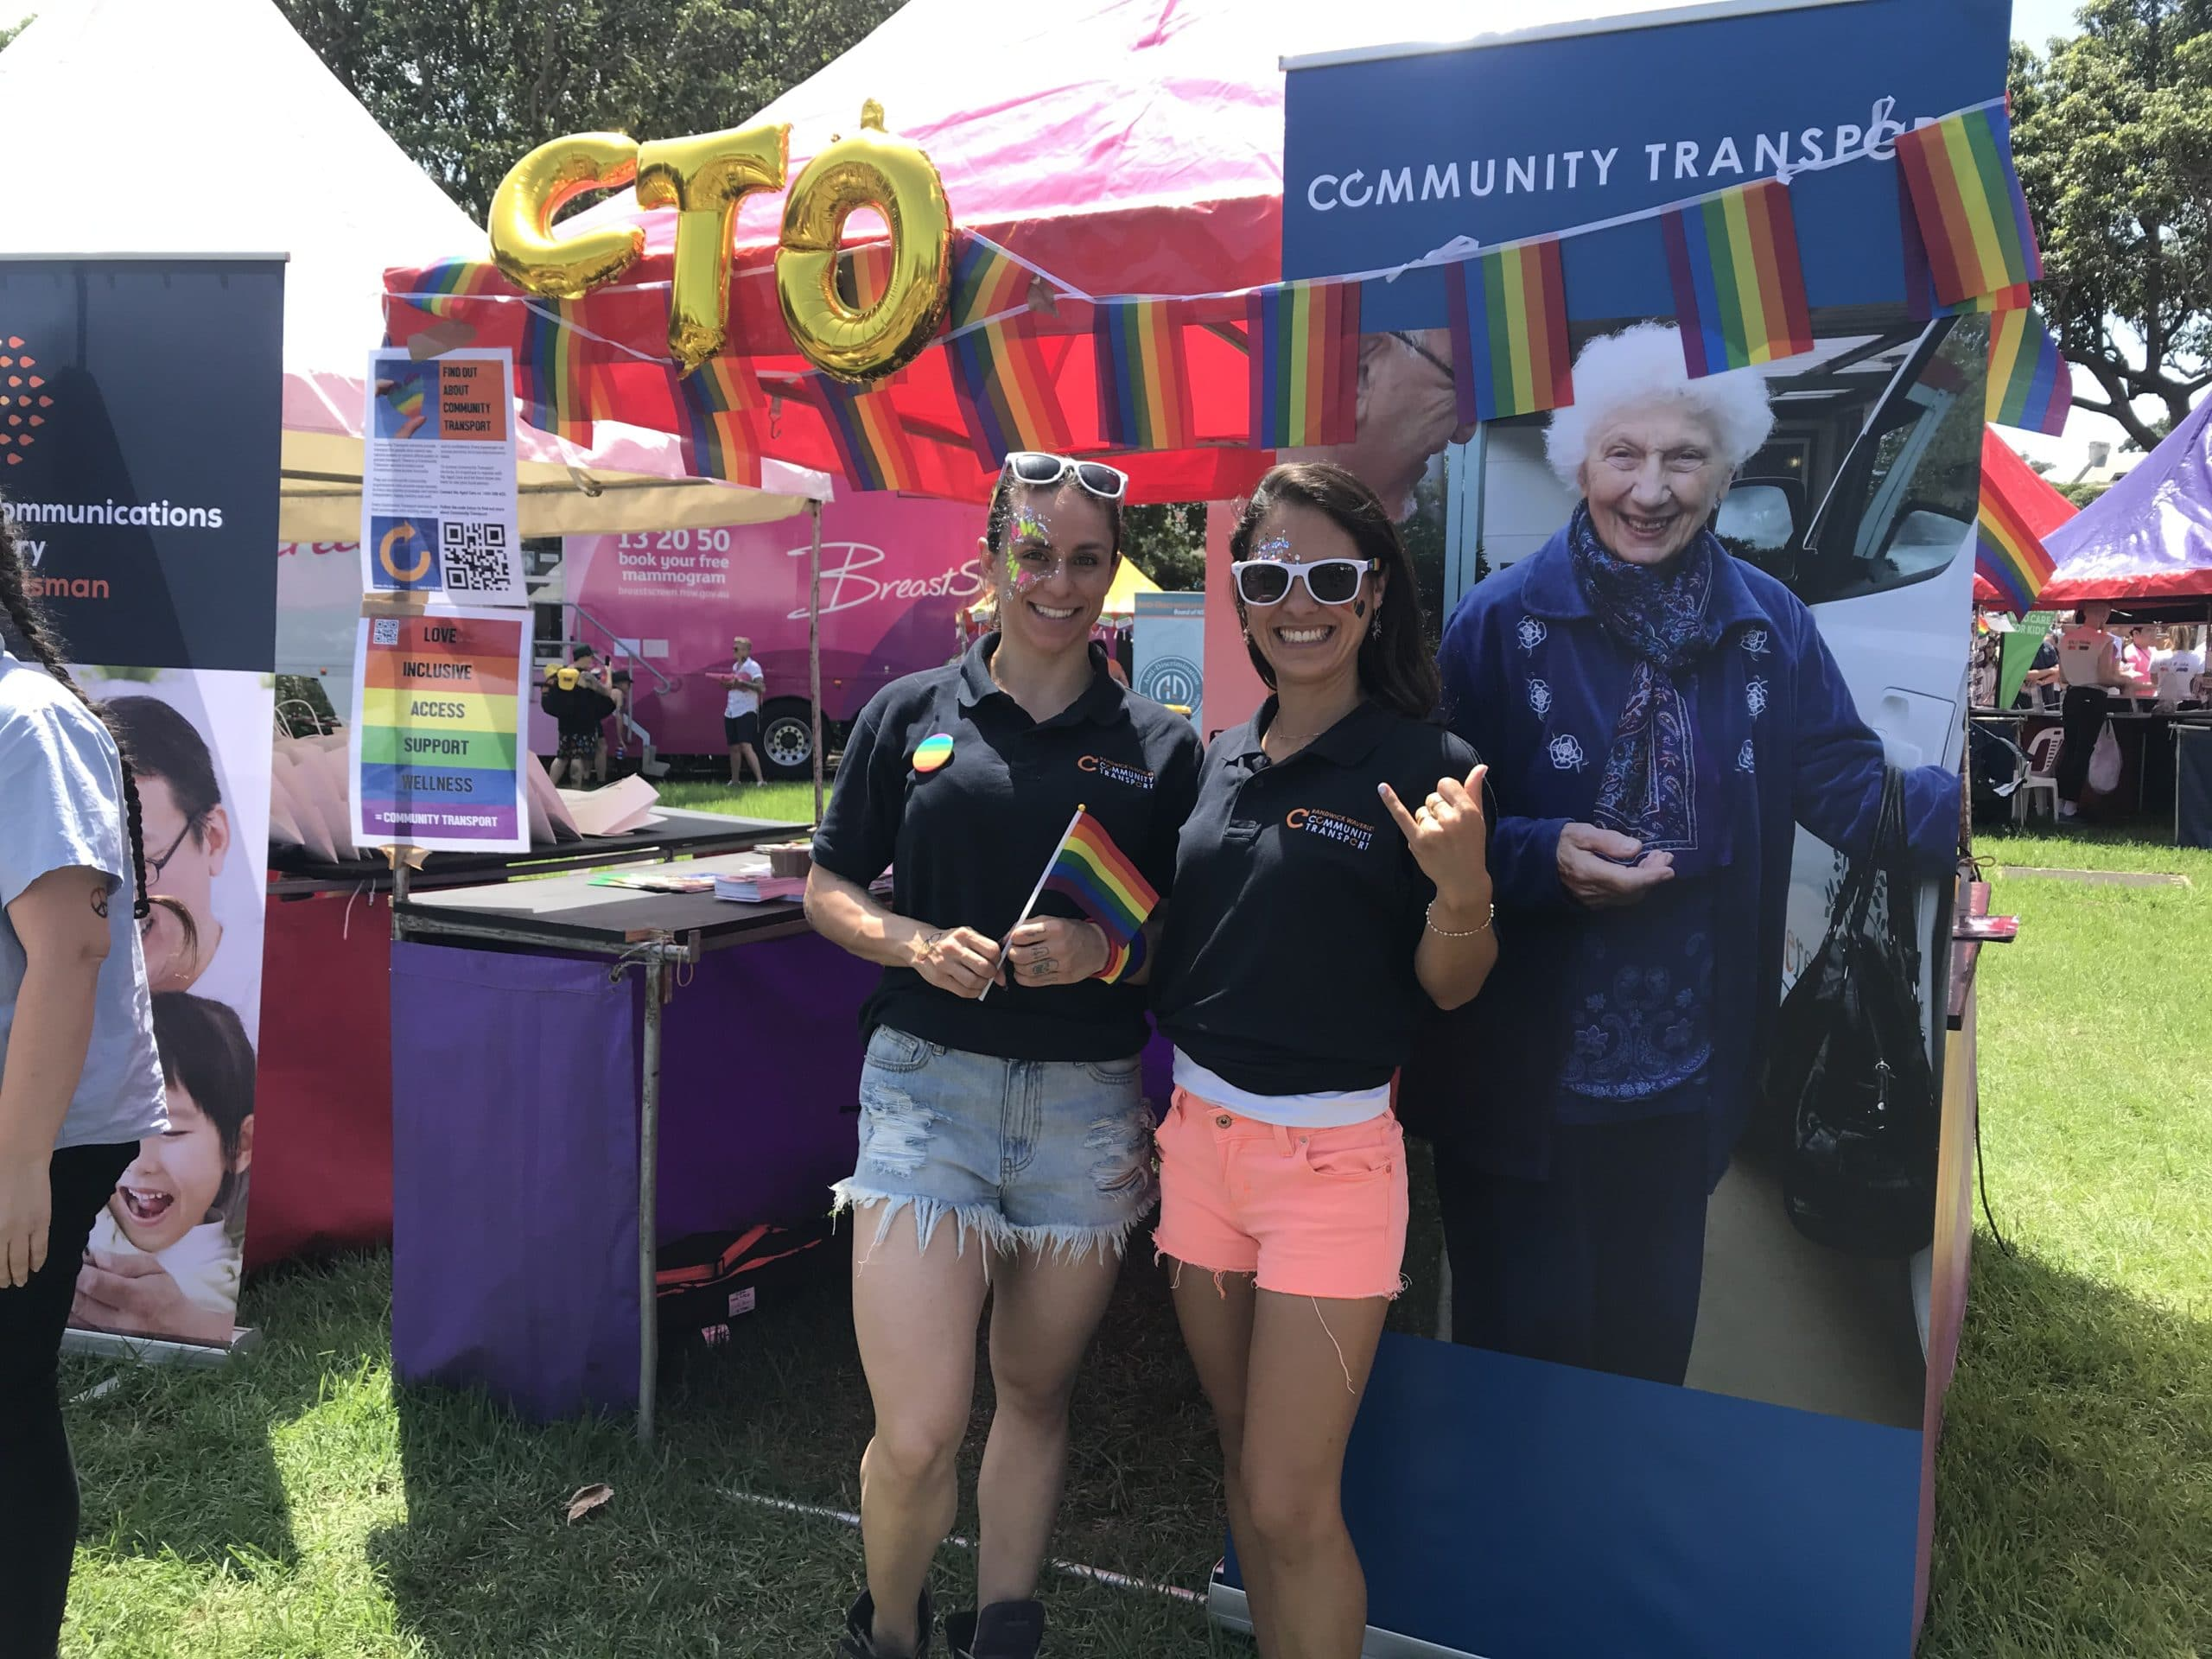 Mardi Gras Fair Day Promoting Community Transport, love, inclusivity, access, support and wellness